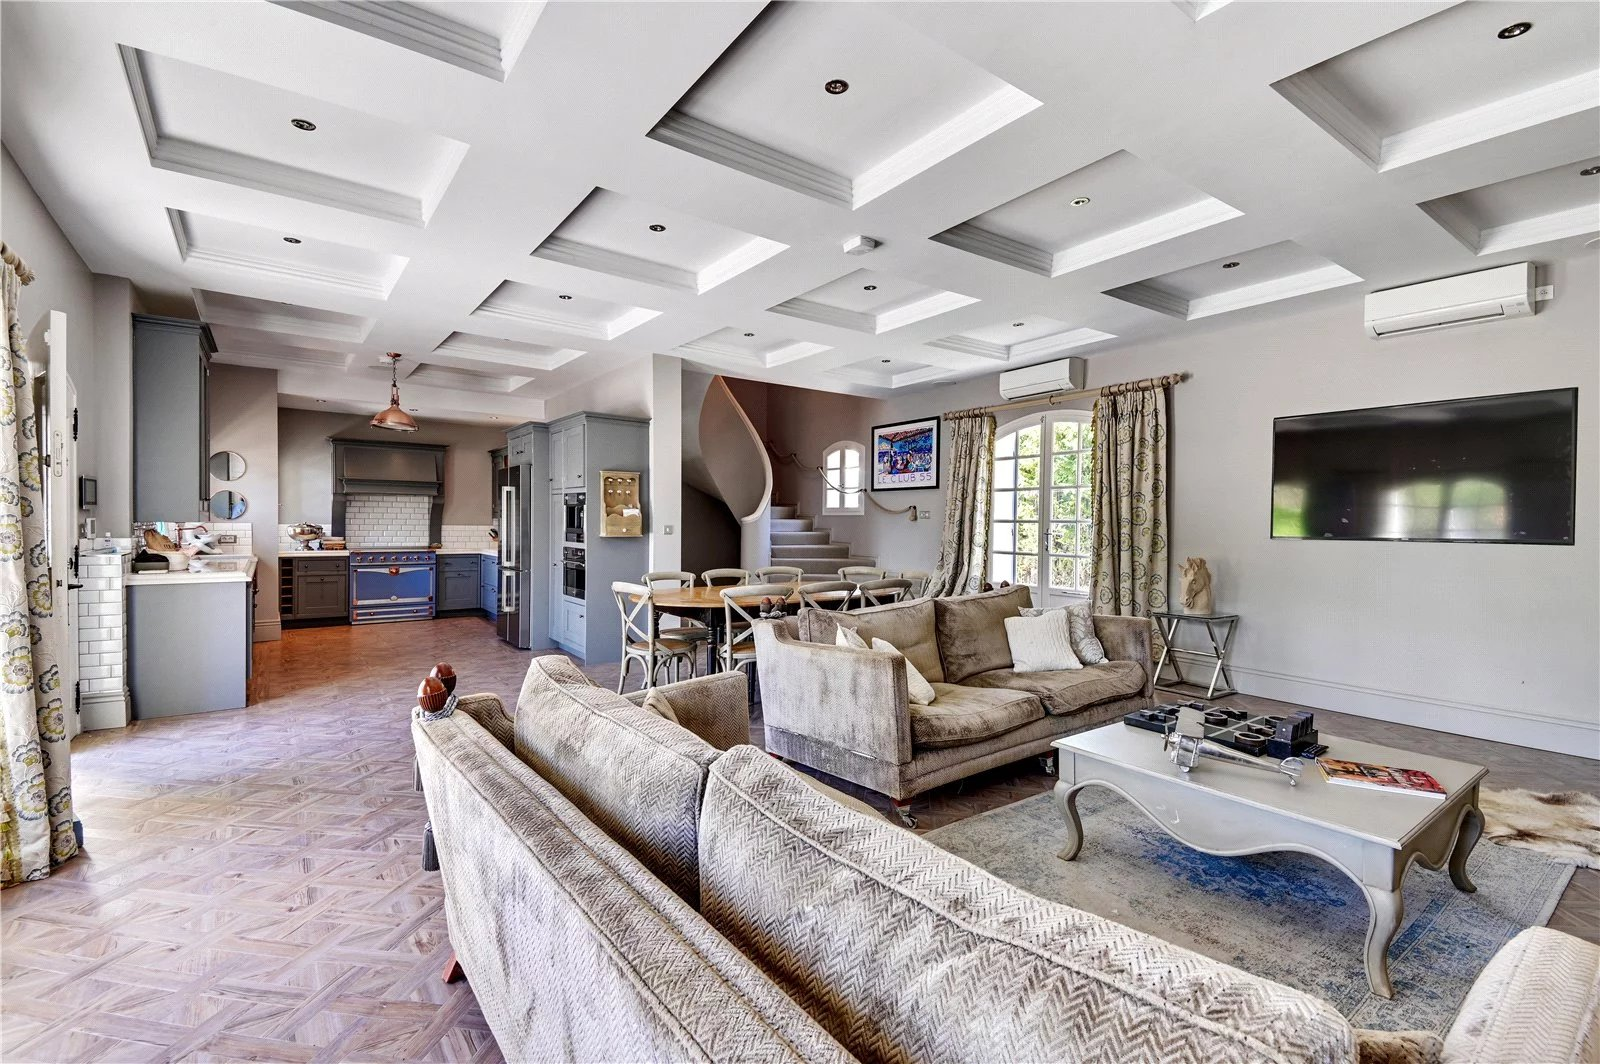 Buying Villa Cap d'Antibes Magnificent tastefully refurbished property with pool, pool house, summer kitchen and garage, ideally located for the beaches.